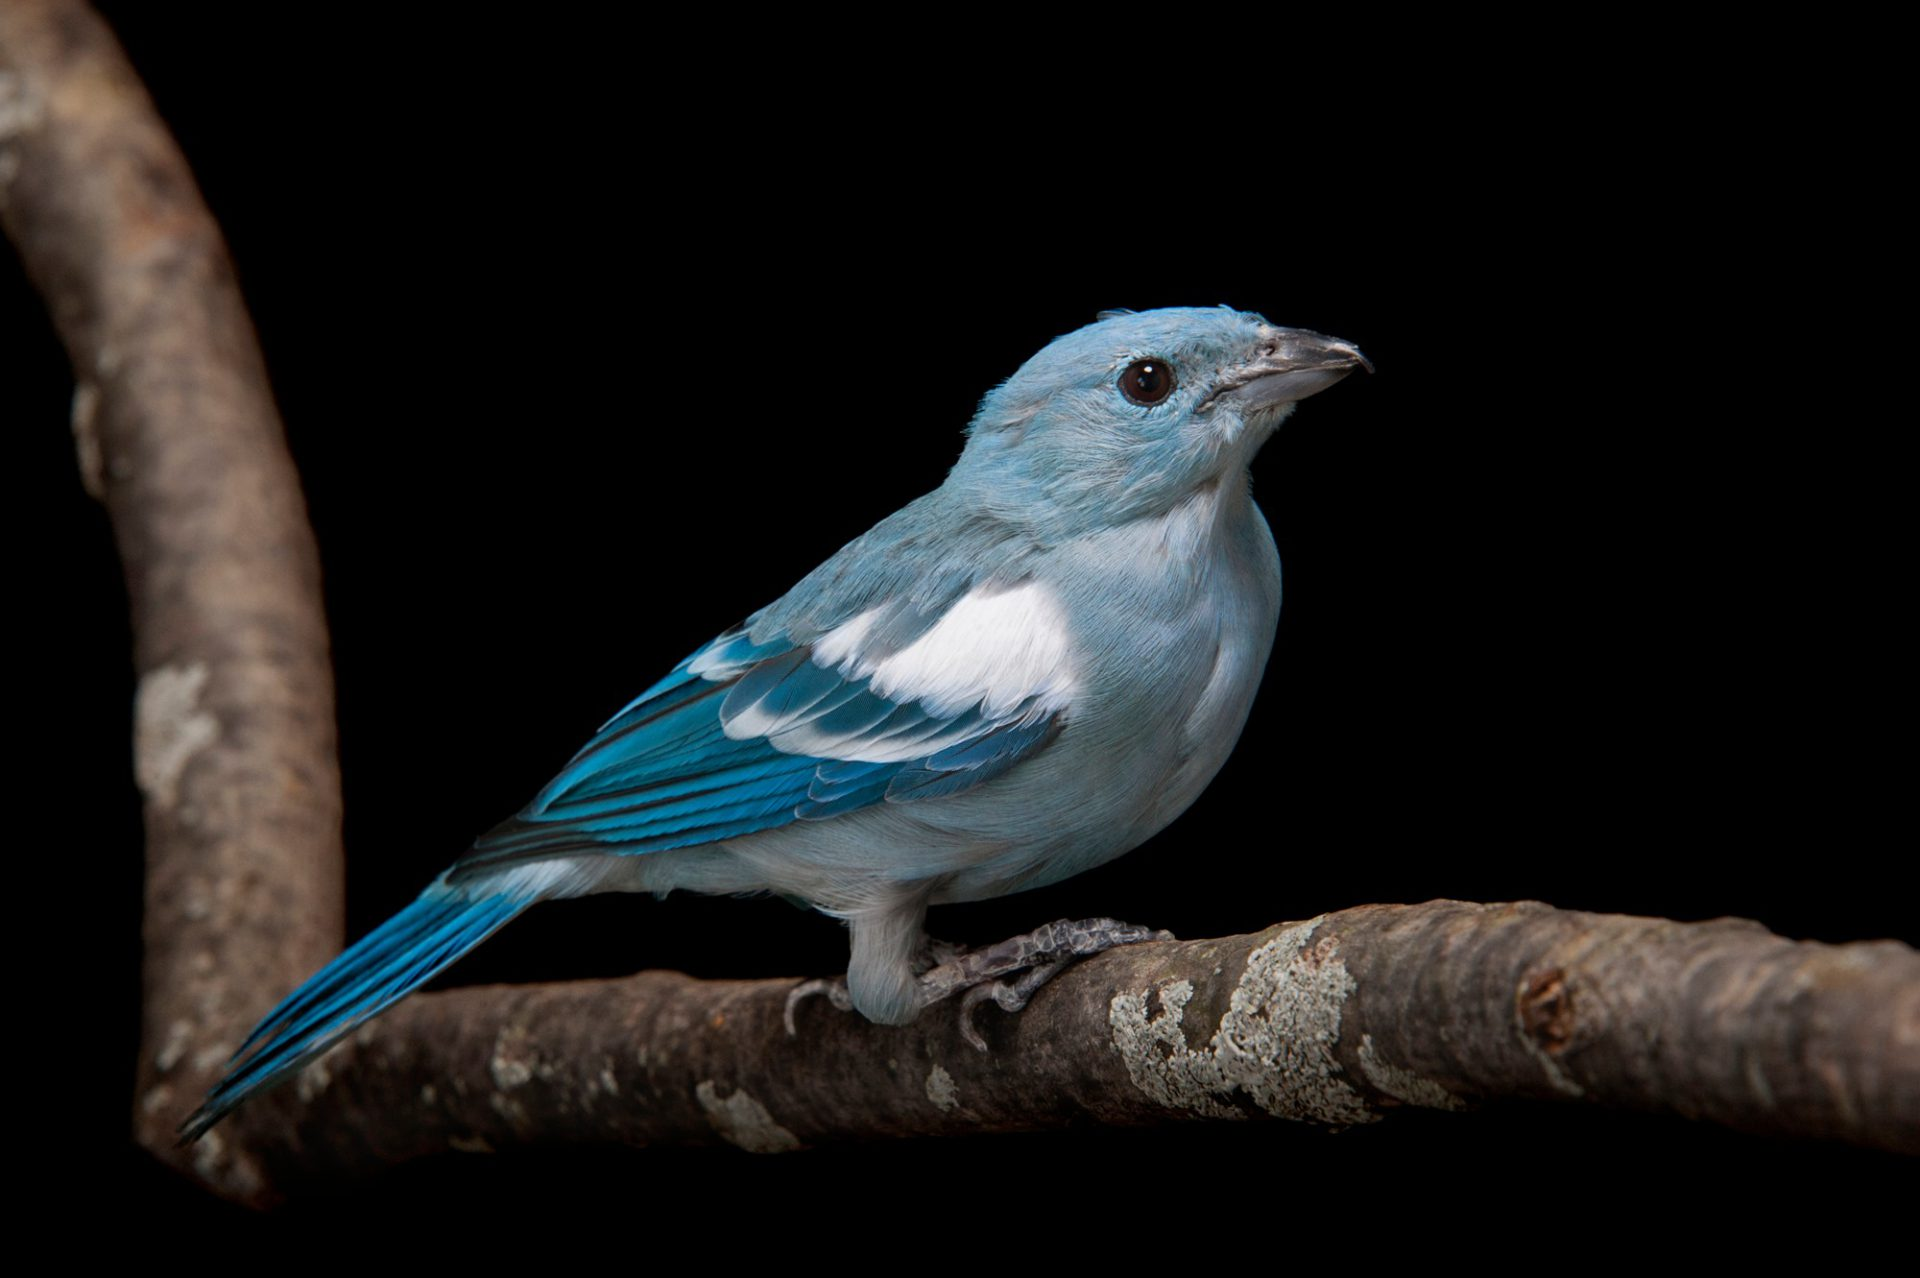 Photo: A blue-grey tanager (Thraupis episcopus) at the Miller Park Zoo.